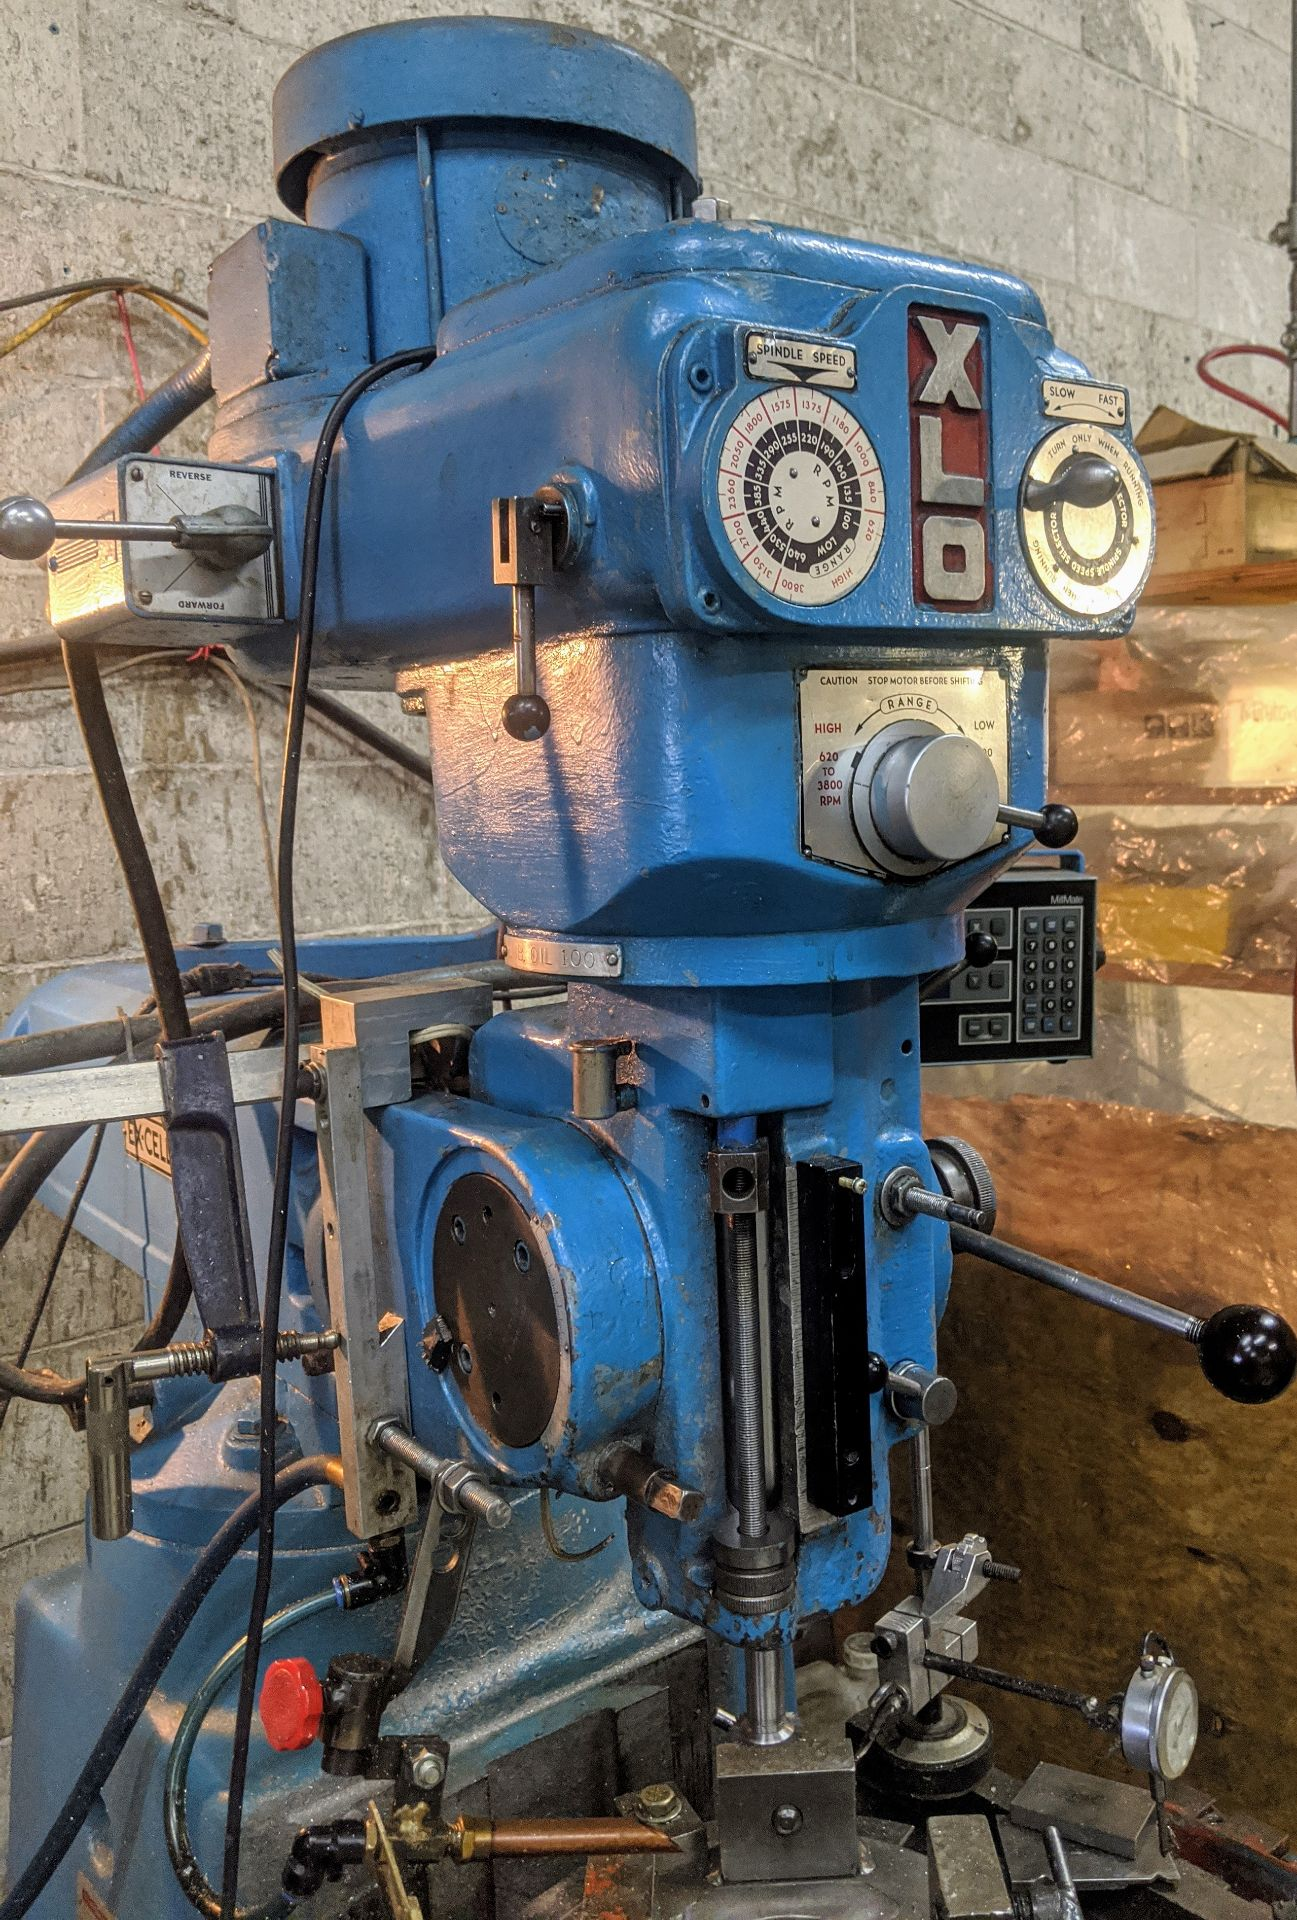 """Lot 34 - EX-CELL-O 602 Vertical Mill, Acu-rite 2-Axis DRO, 9"""" x 42"""" Table, Speeds to 3,800 RPM, Align Power"""